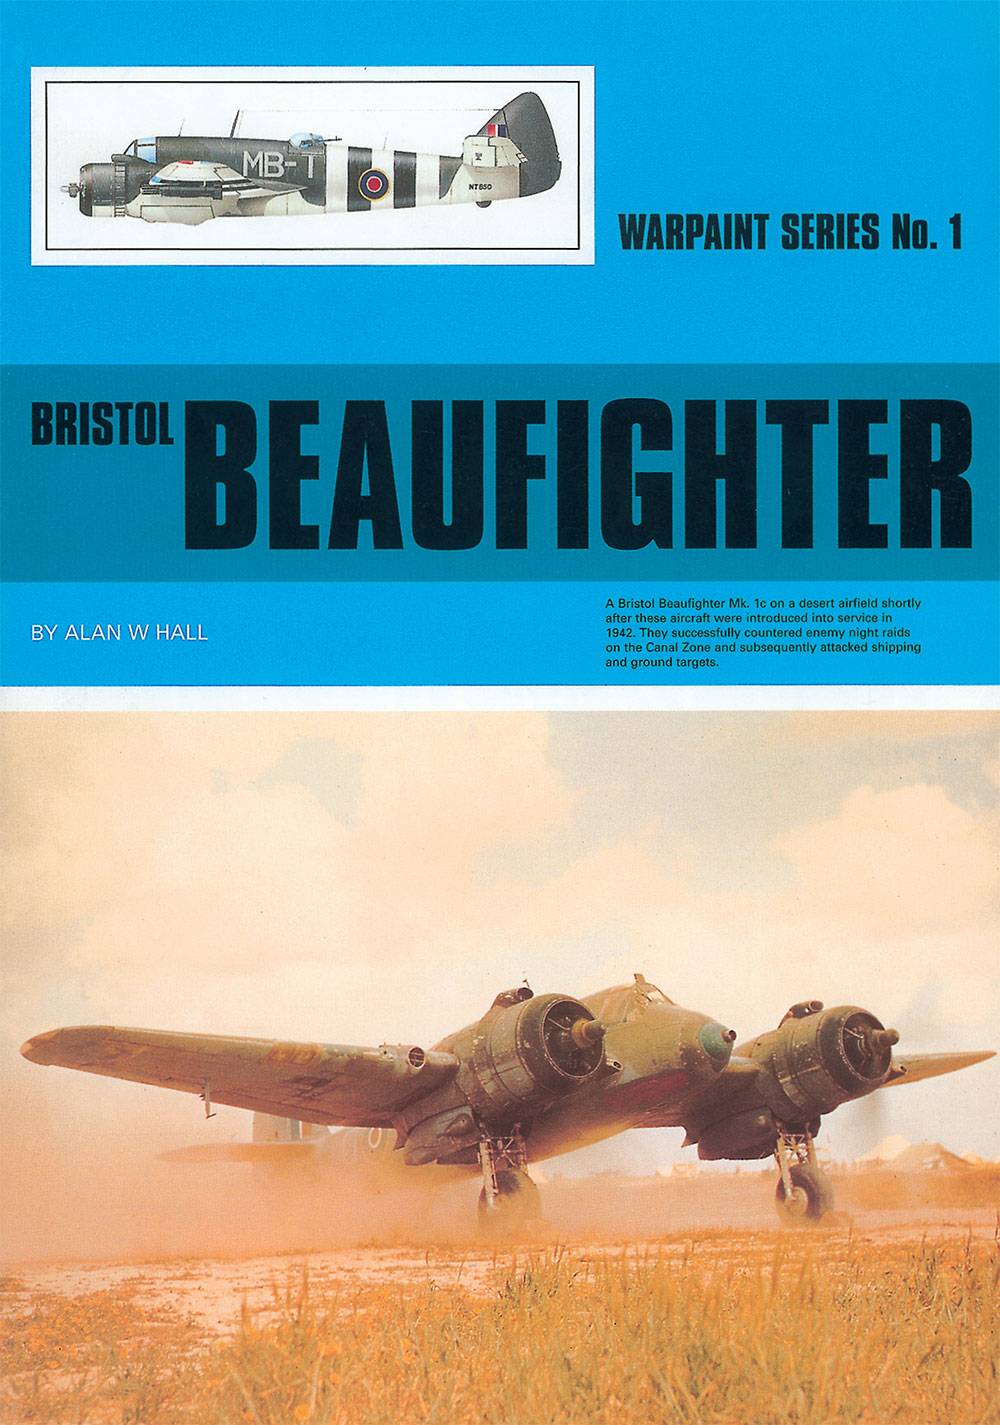 Warpaint Series 1 Bristol Beaufighter